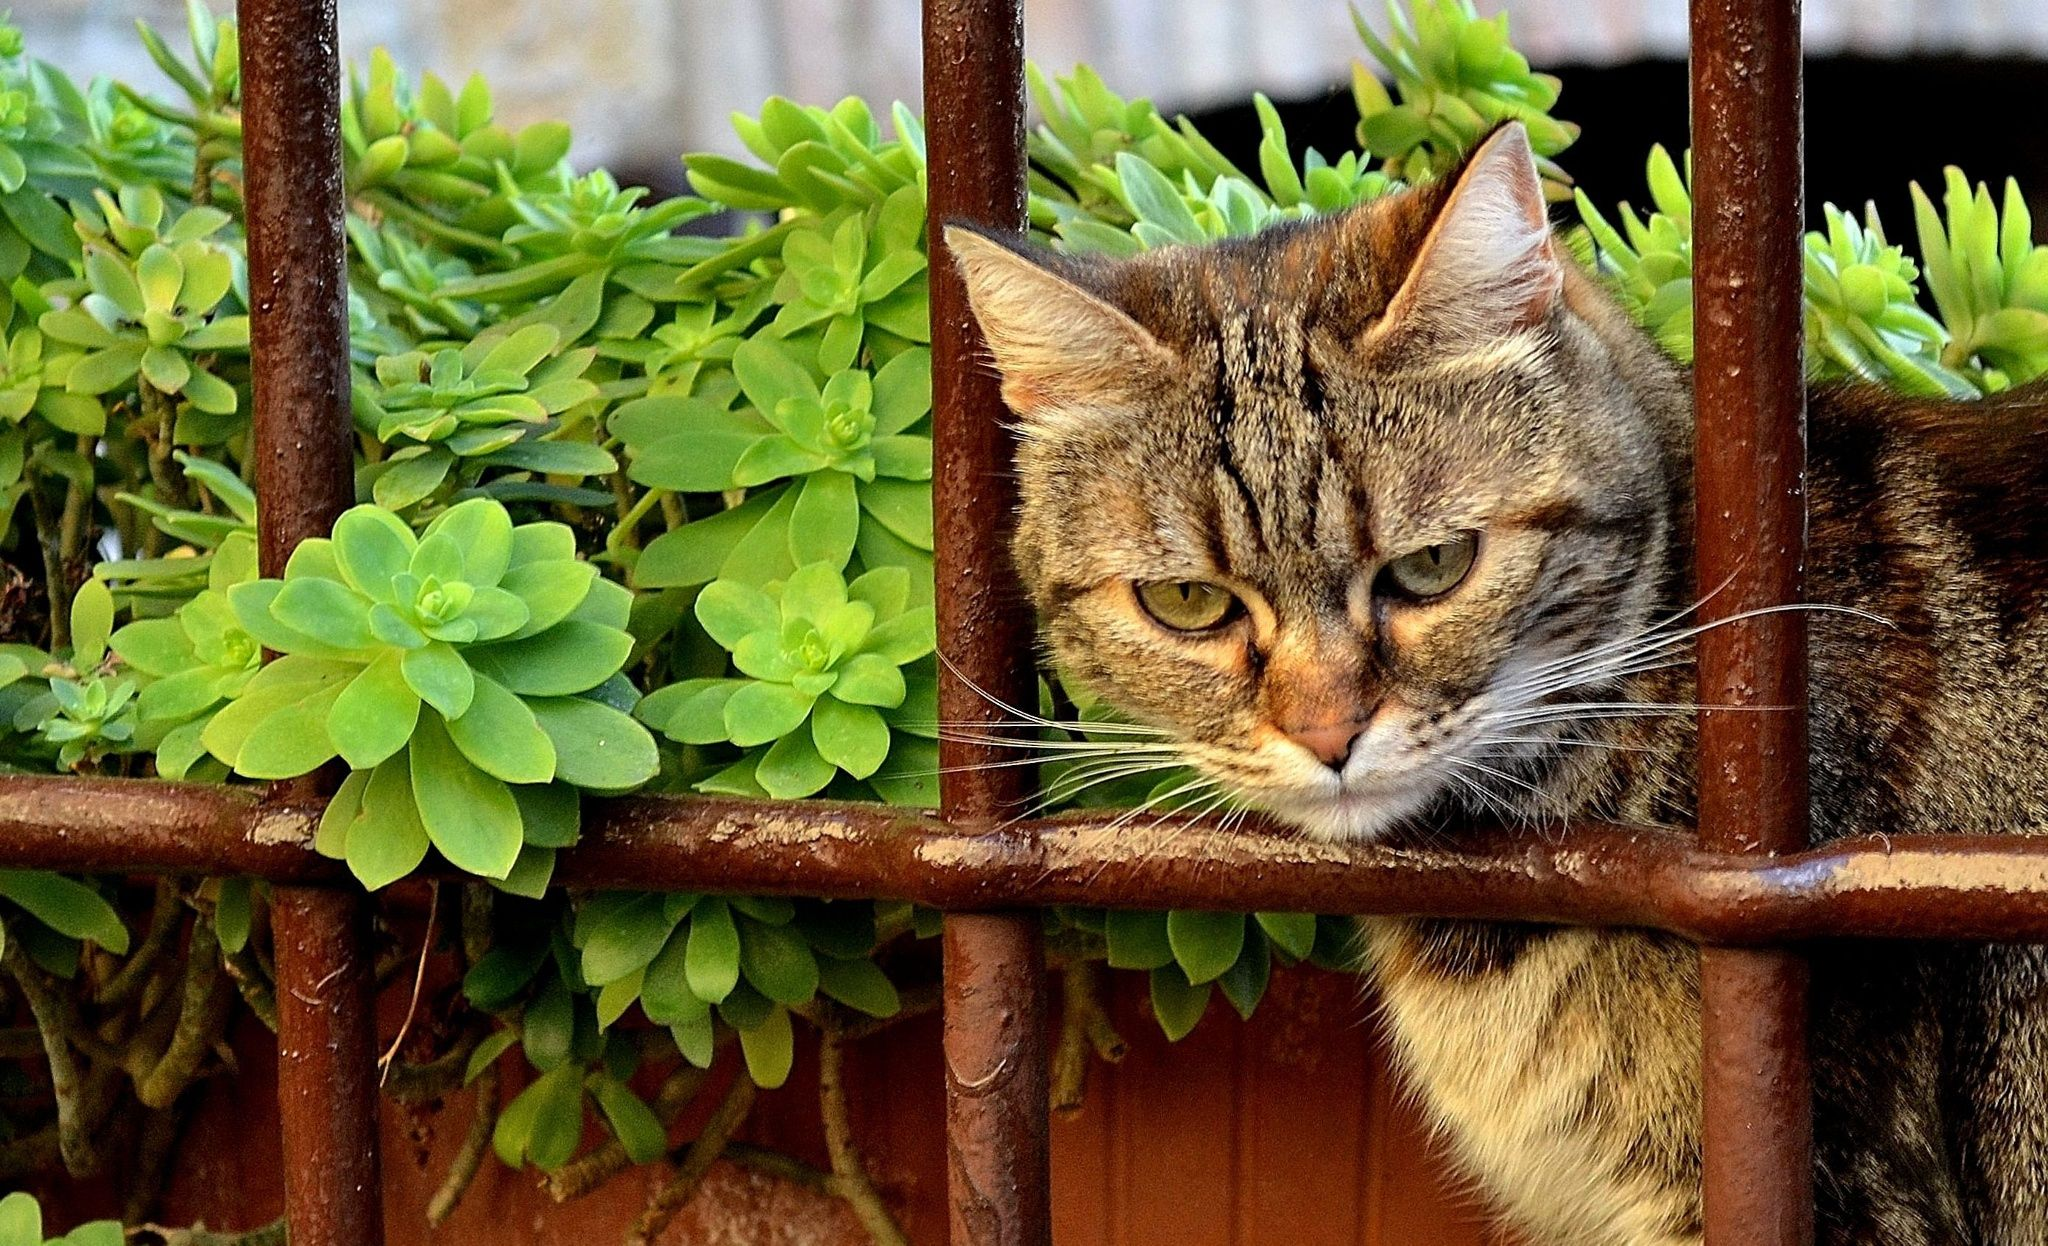 The cat behind bars by Eleonora Albasi on 500px